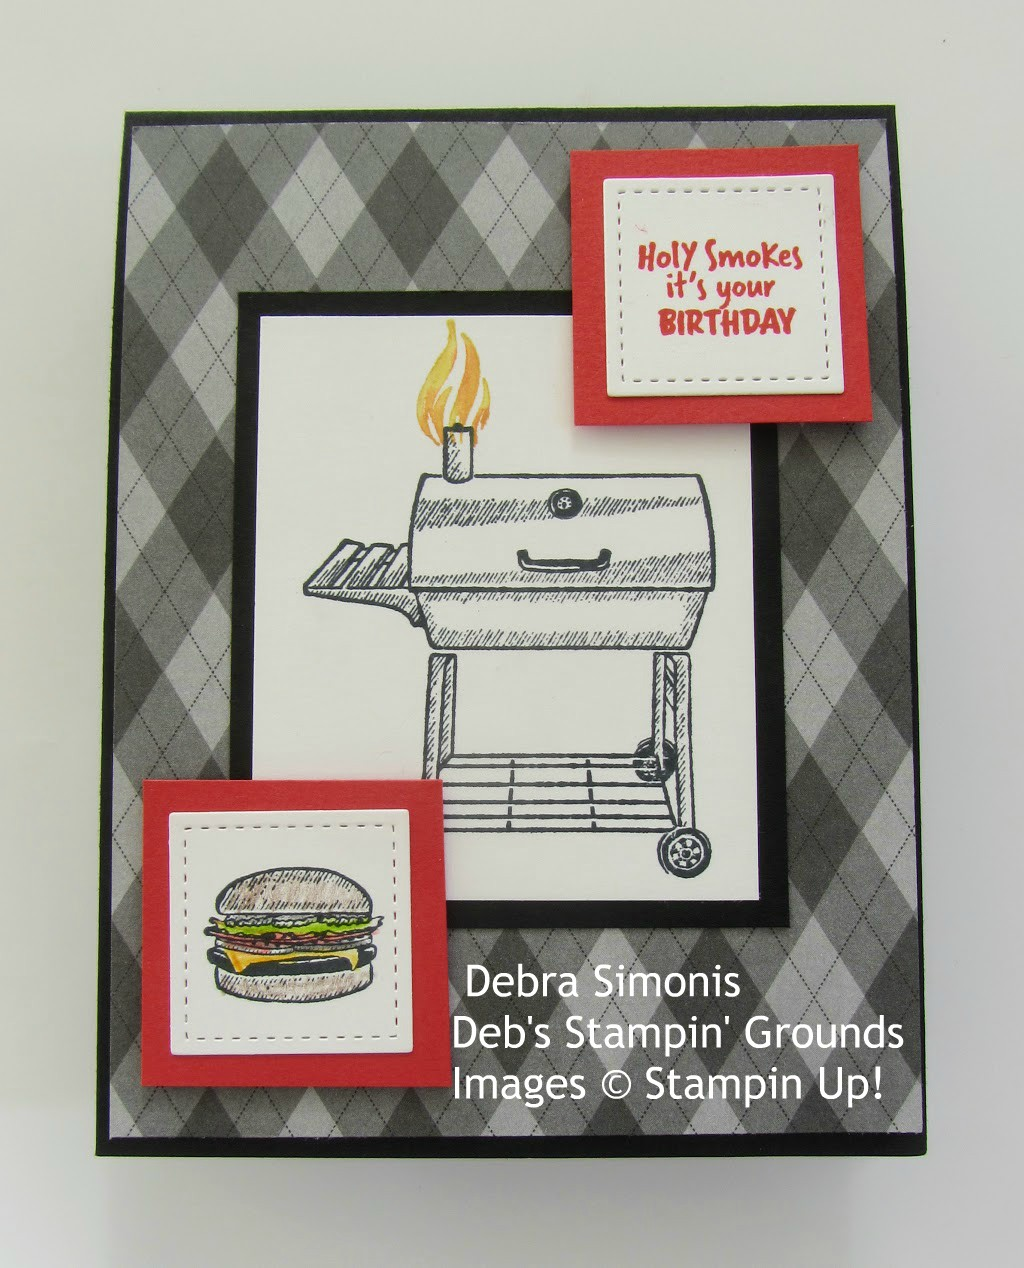 Stampin-Up-Outdoor-Barbecue-Country-Club-Designer-Series-Paper-barbeque-grill-masculine-card-Debra-Simonis-Stampinup